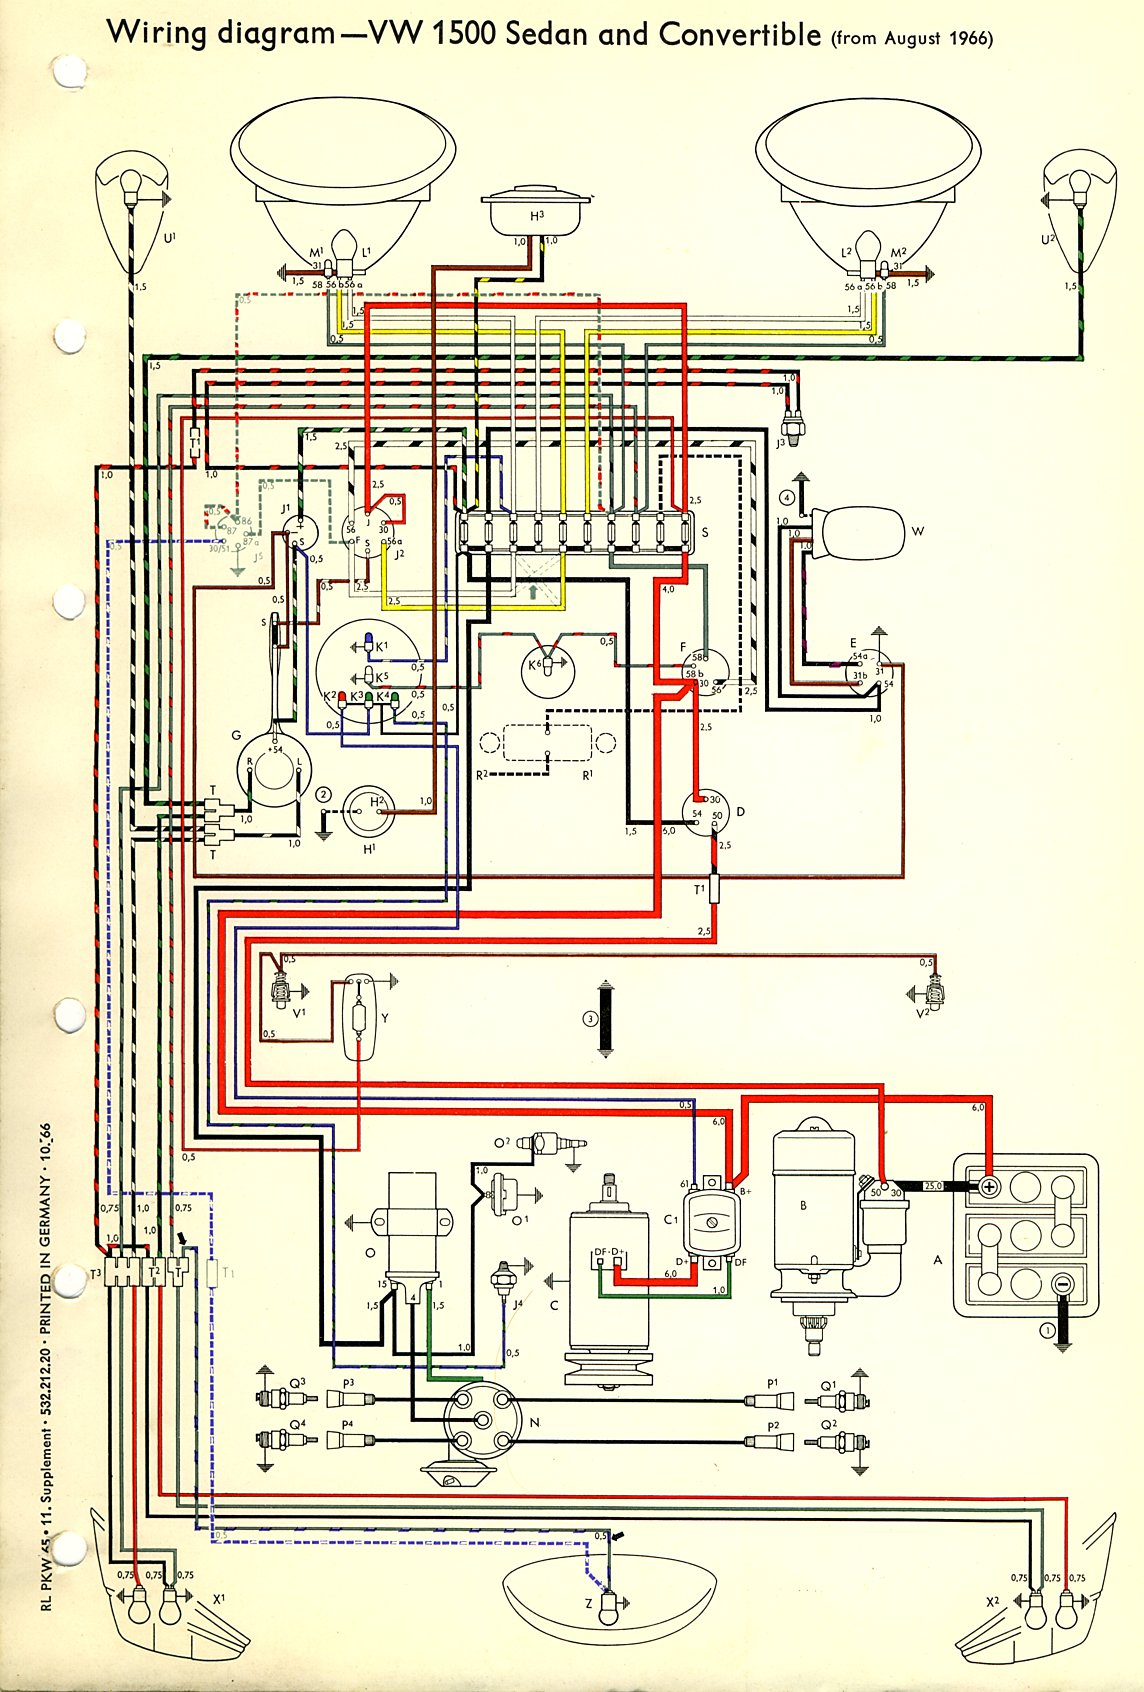 2008 Charger Fuse Box Diagram Dodge Wiring Will Be A Thing Thesamba Com Type 1 Diagrams 2006